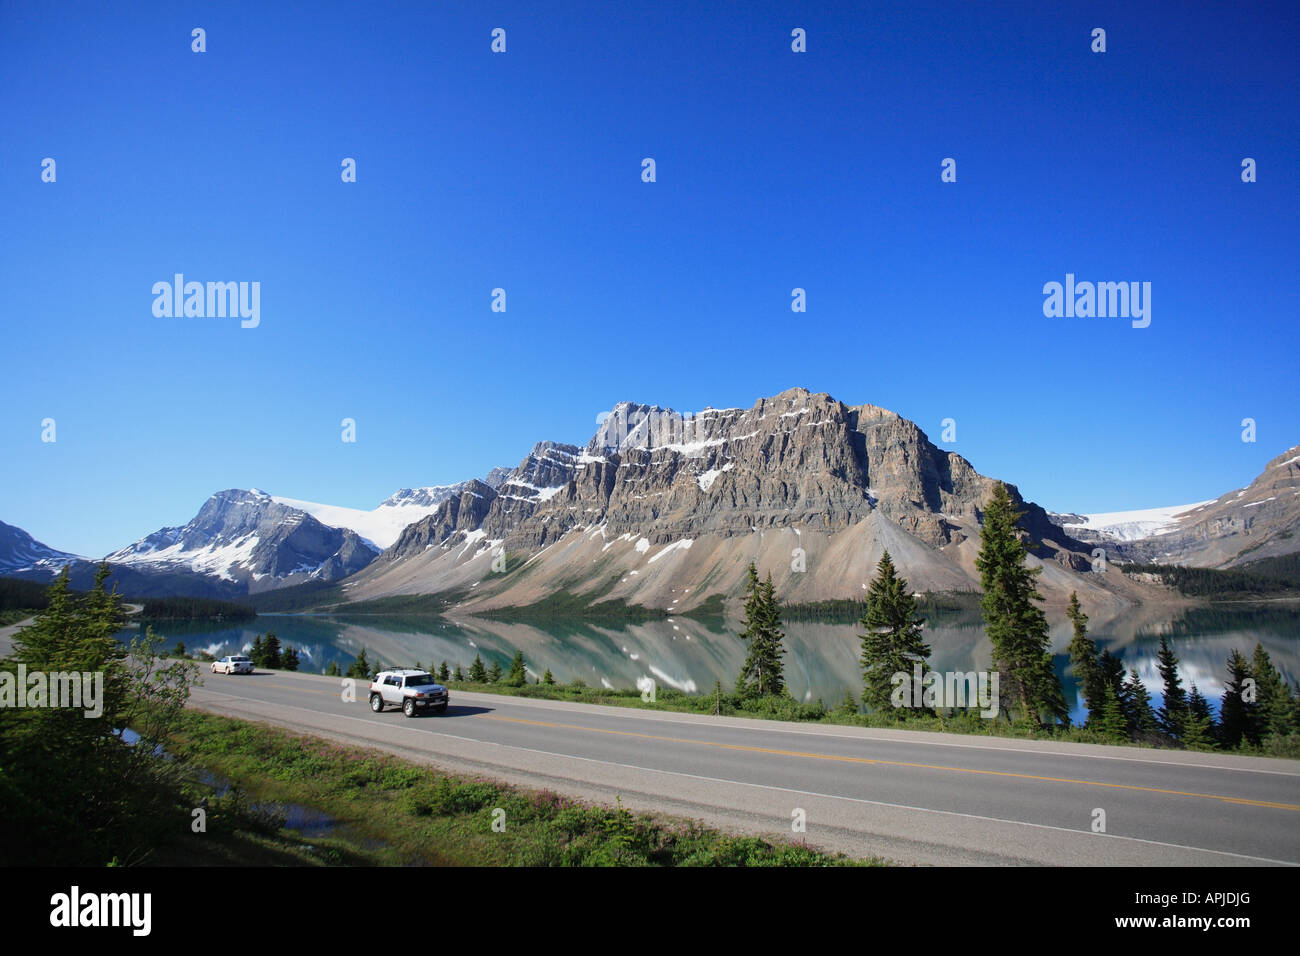 View across turquoise waters of Bow Lake in summer Banff National